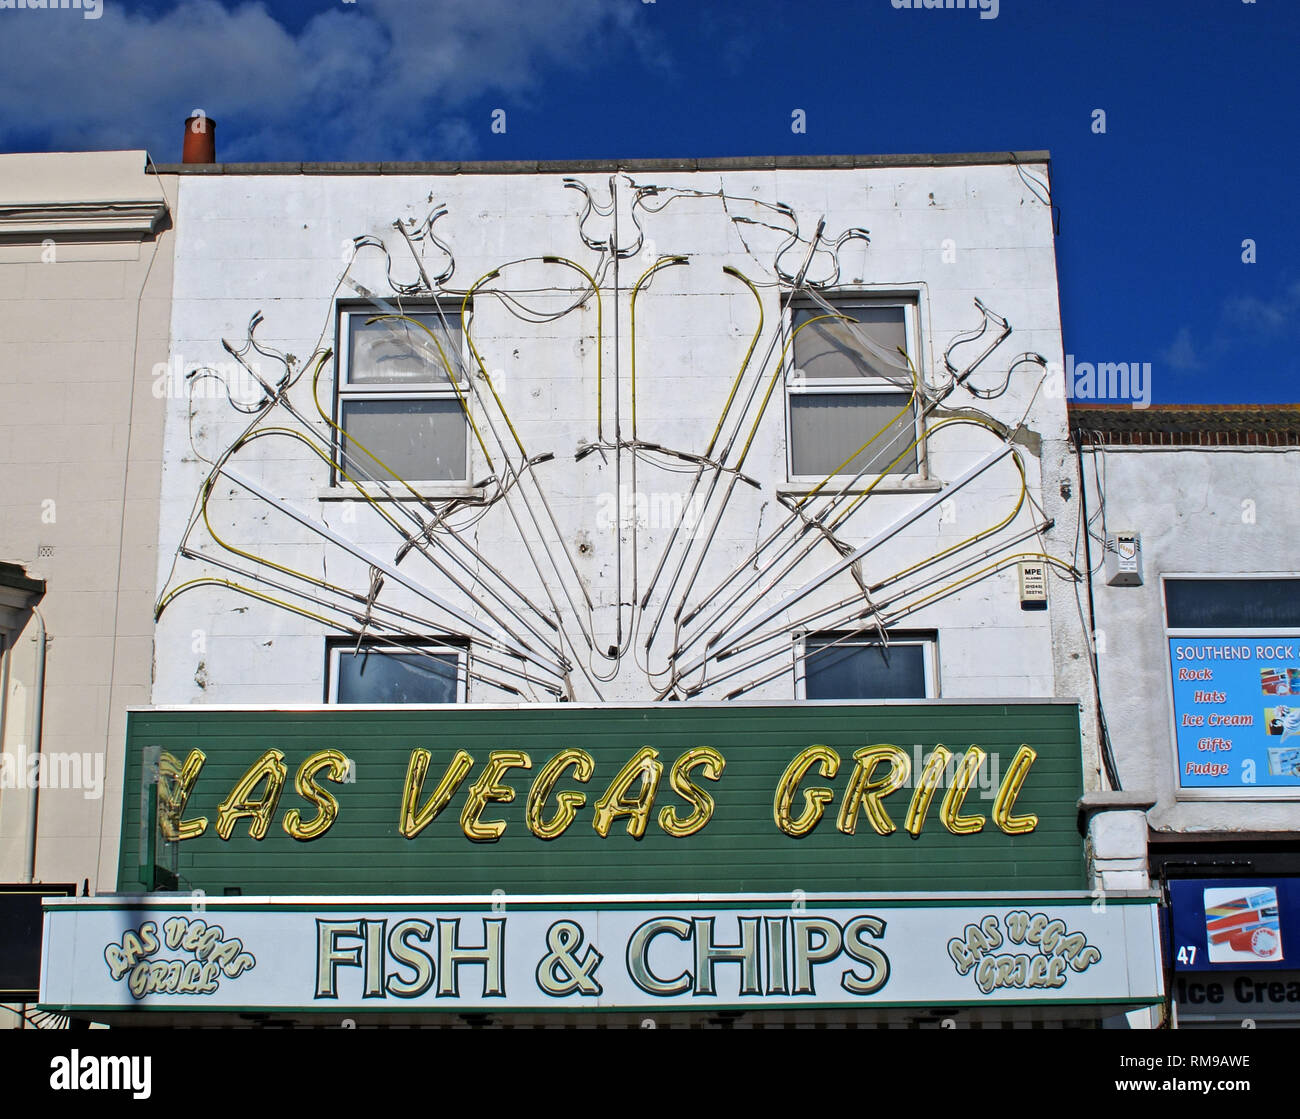 Las Vegas Grill, Southend, seafood, 46 Marine Parade, Southend-on-Sea SS1 2EN - Stock Image